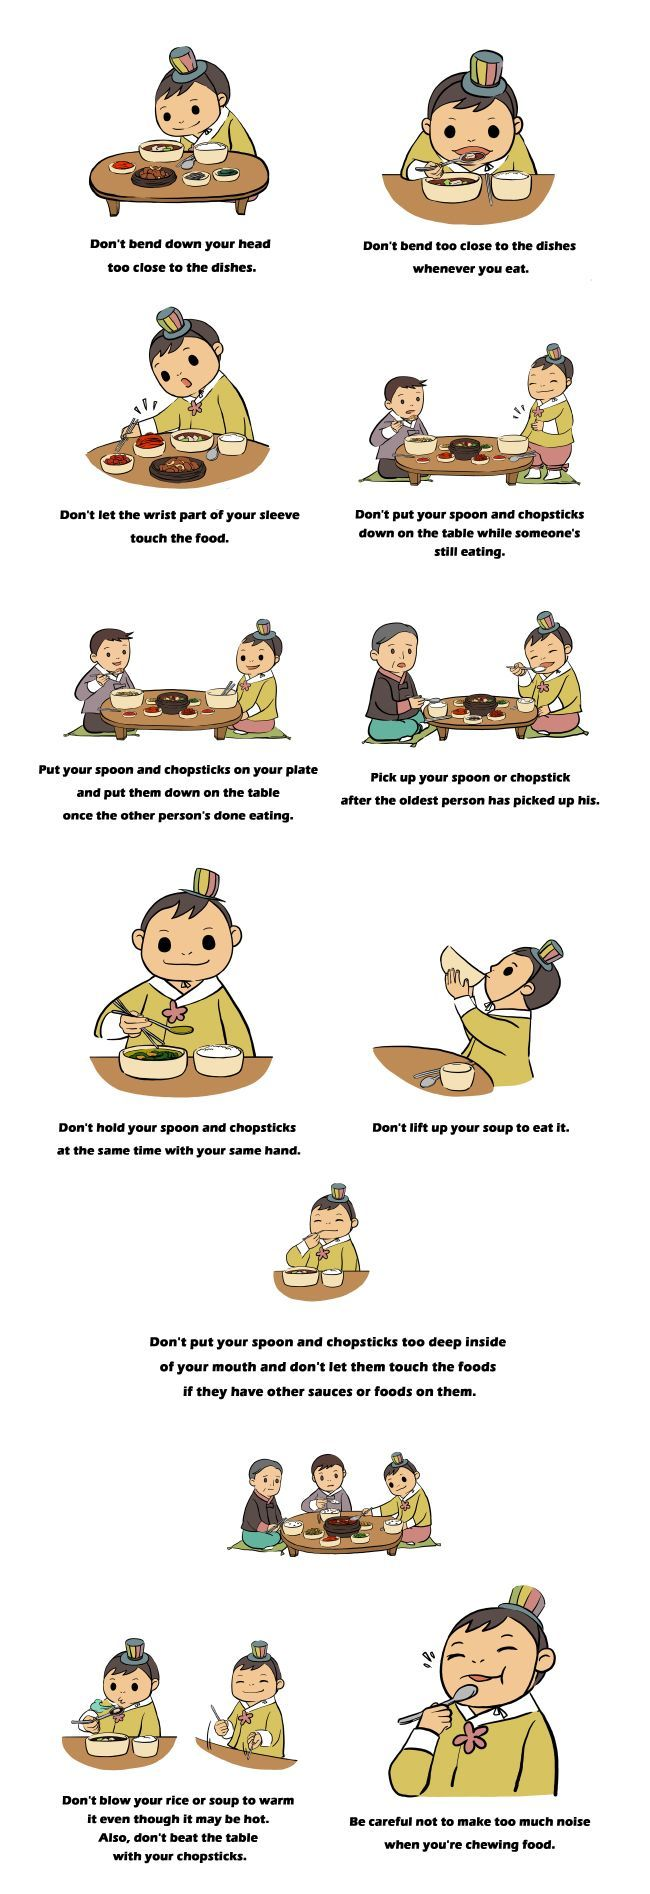 Korean food story 12 table manners to follow the korean for Table etiquette rules